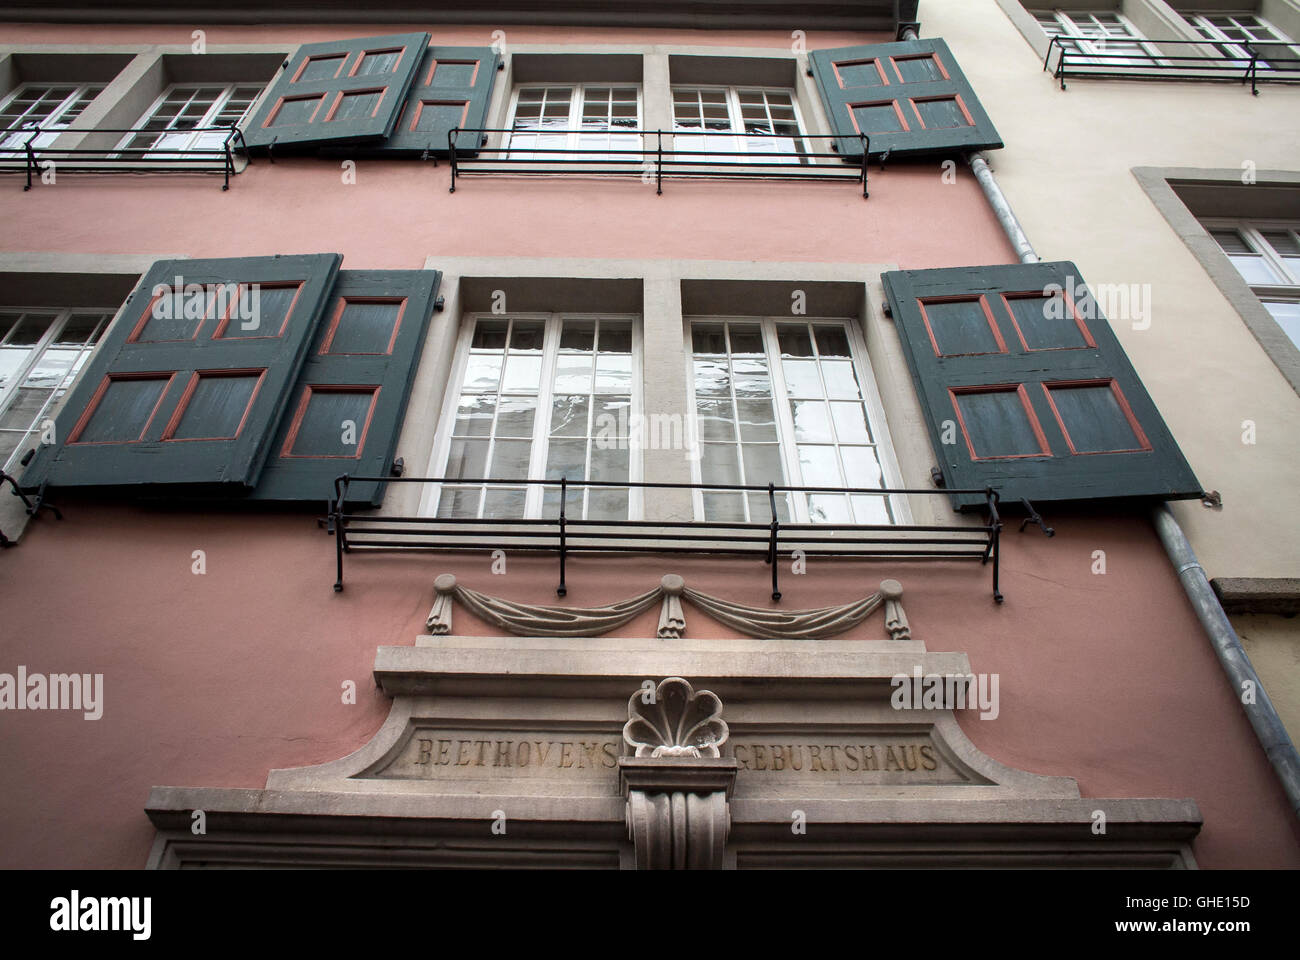 The Beethoven House  in Bonn, Germany - Stock Image